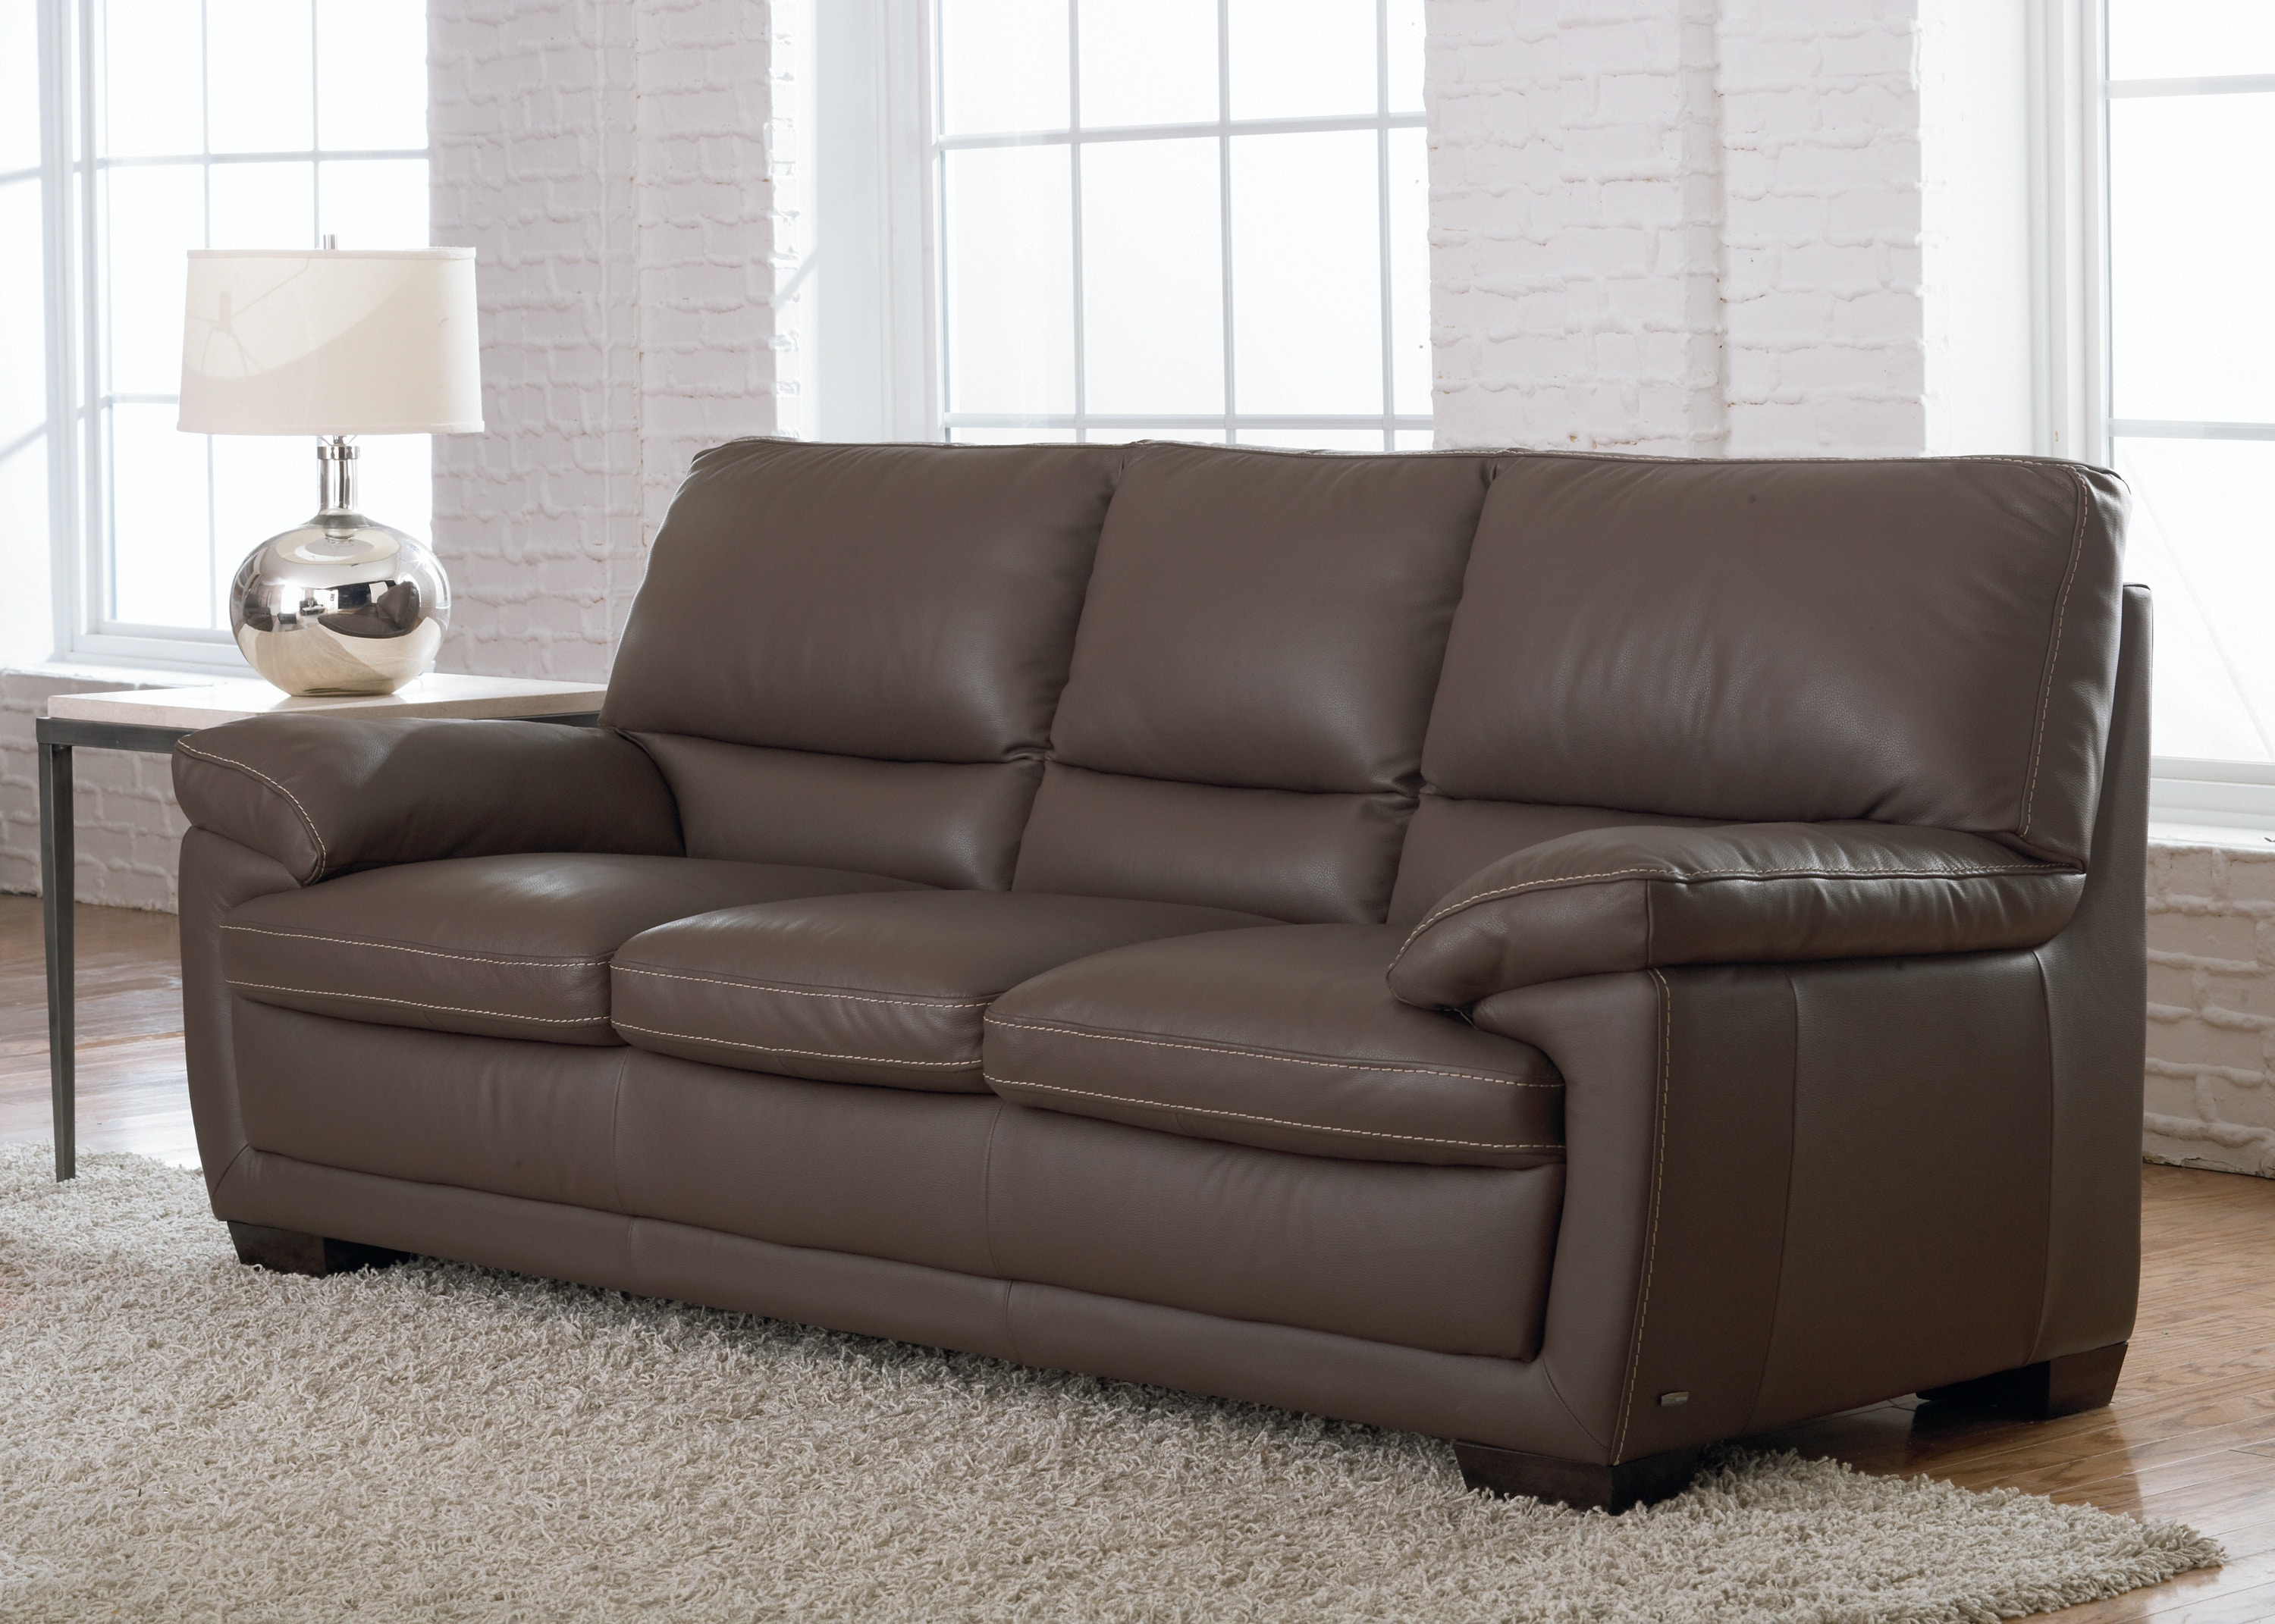 natuzzi leather sofas